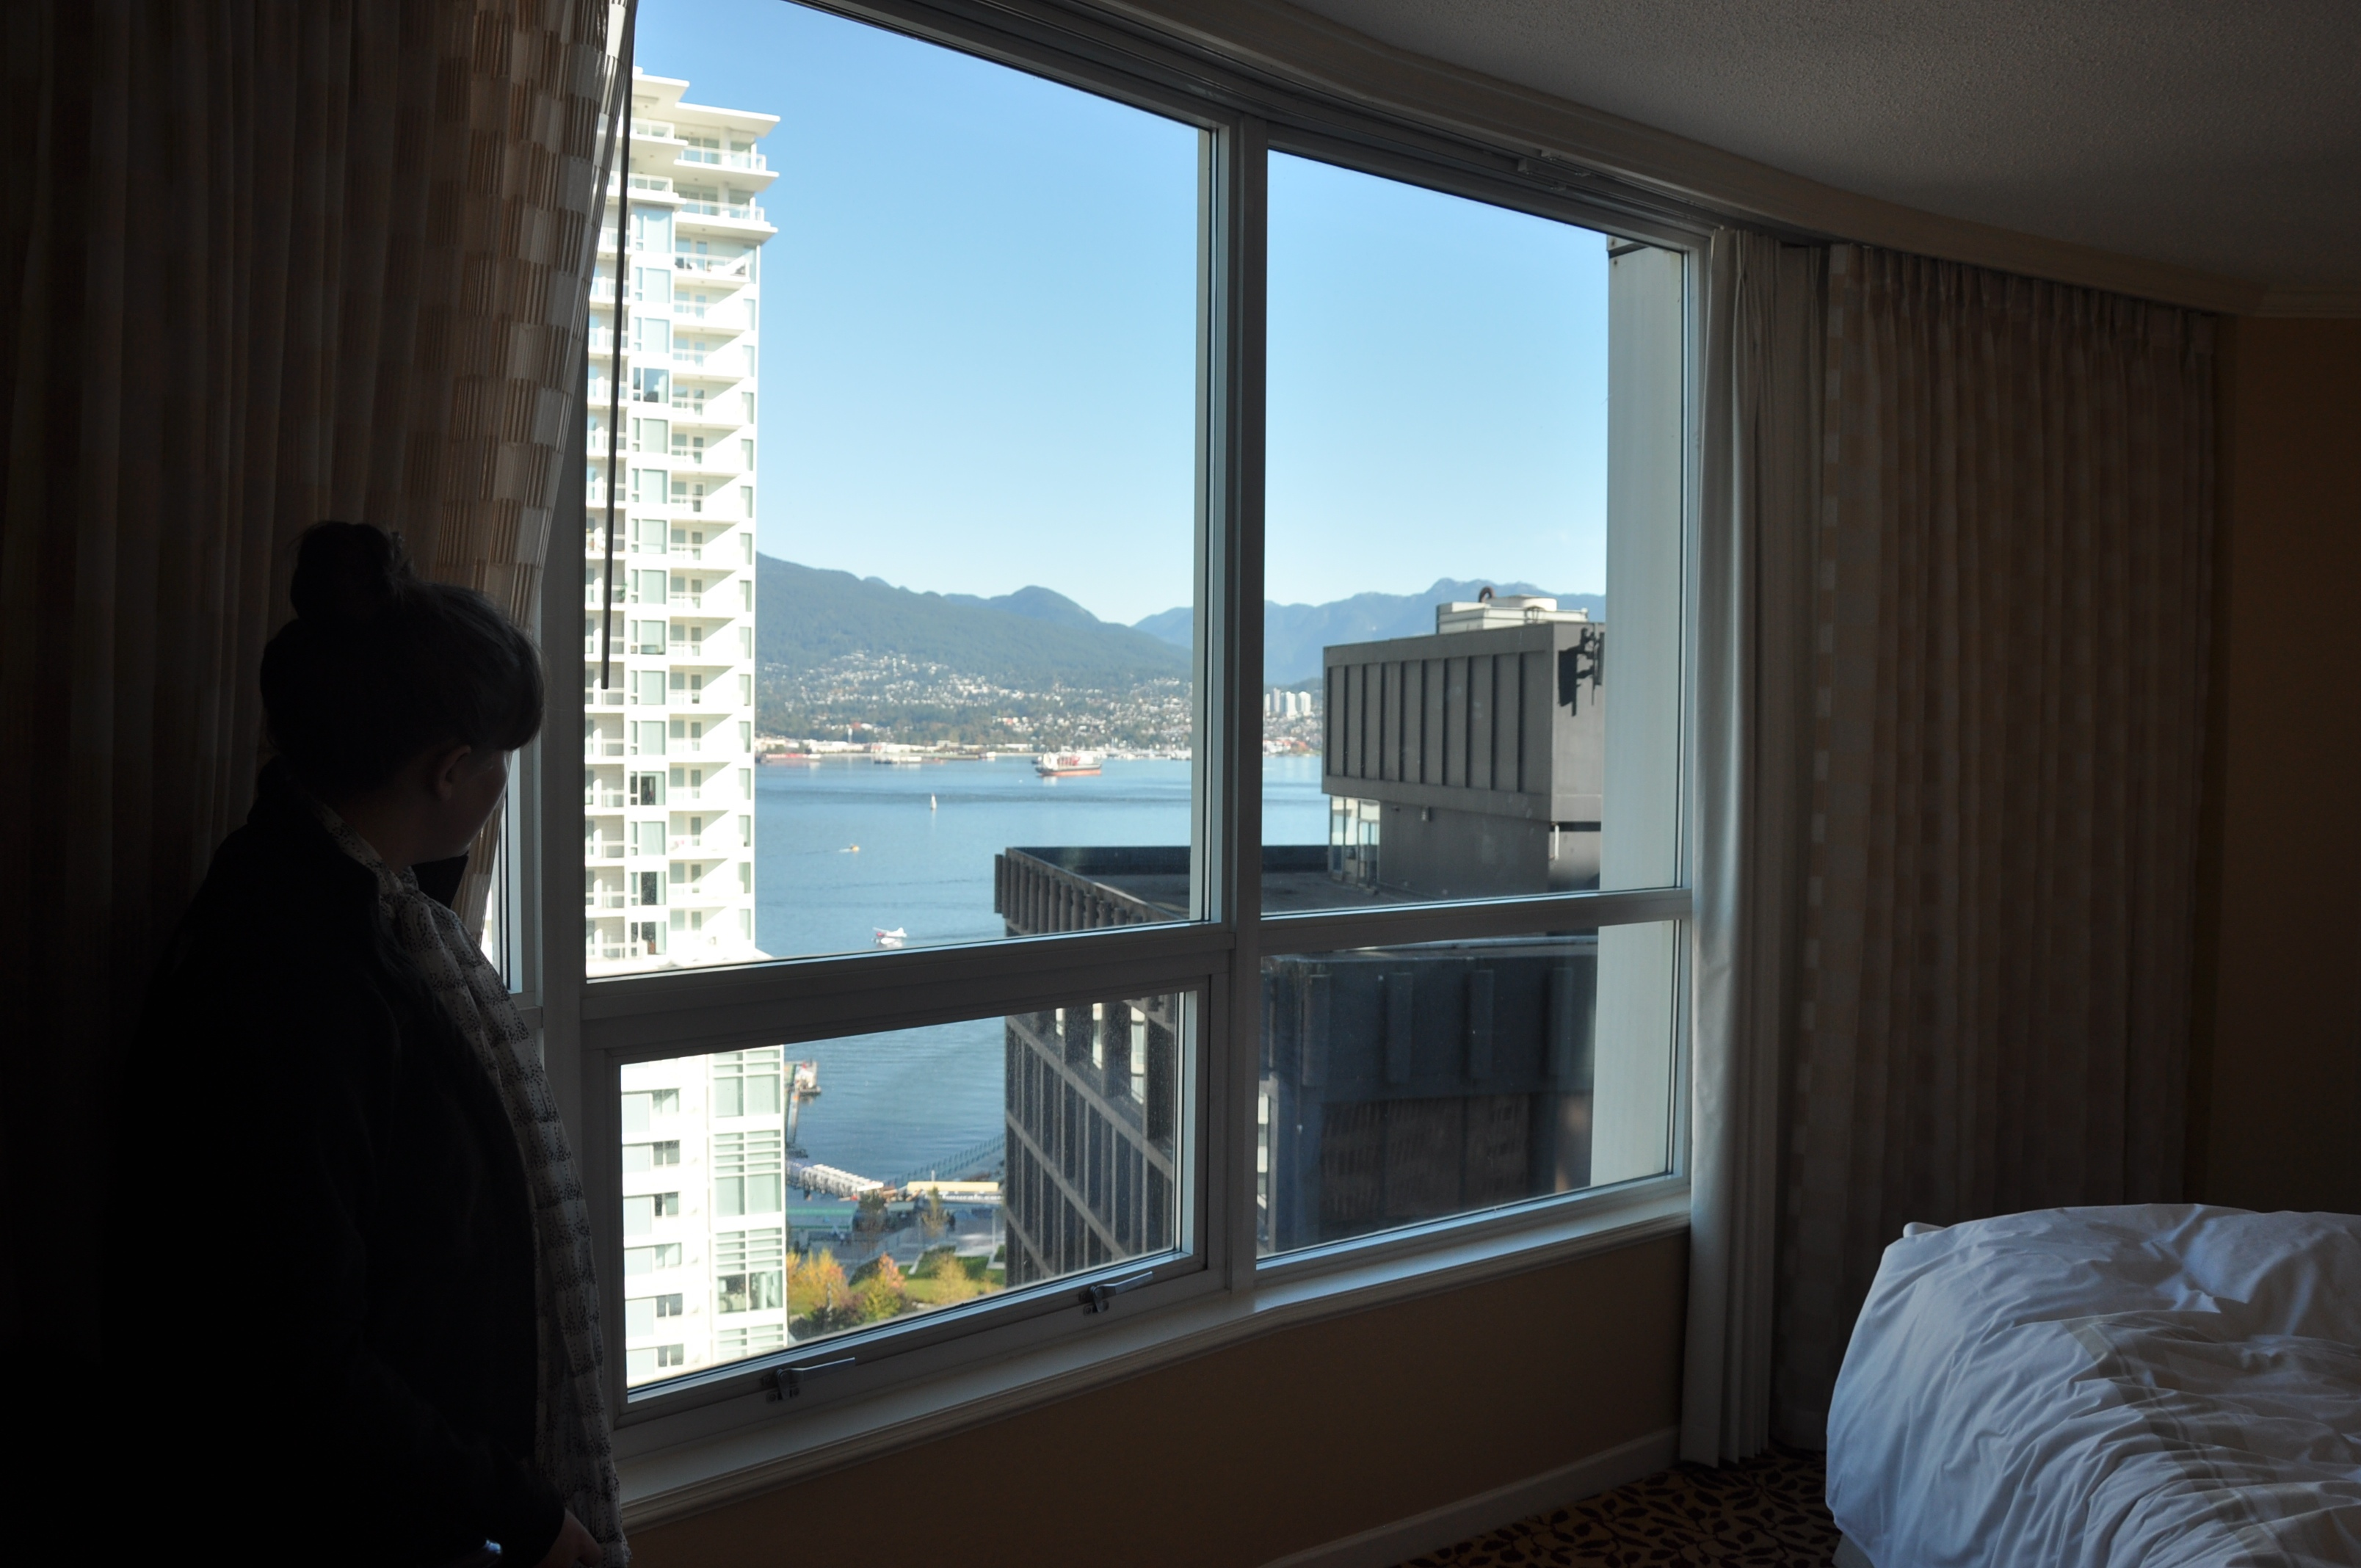 80 bucks for a corner room with a view at the Marriot. Thank you Priceline.com!!!!